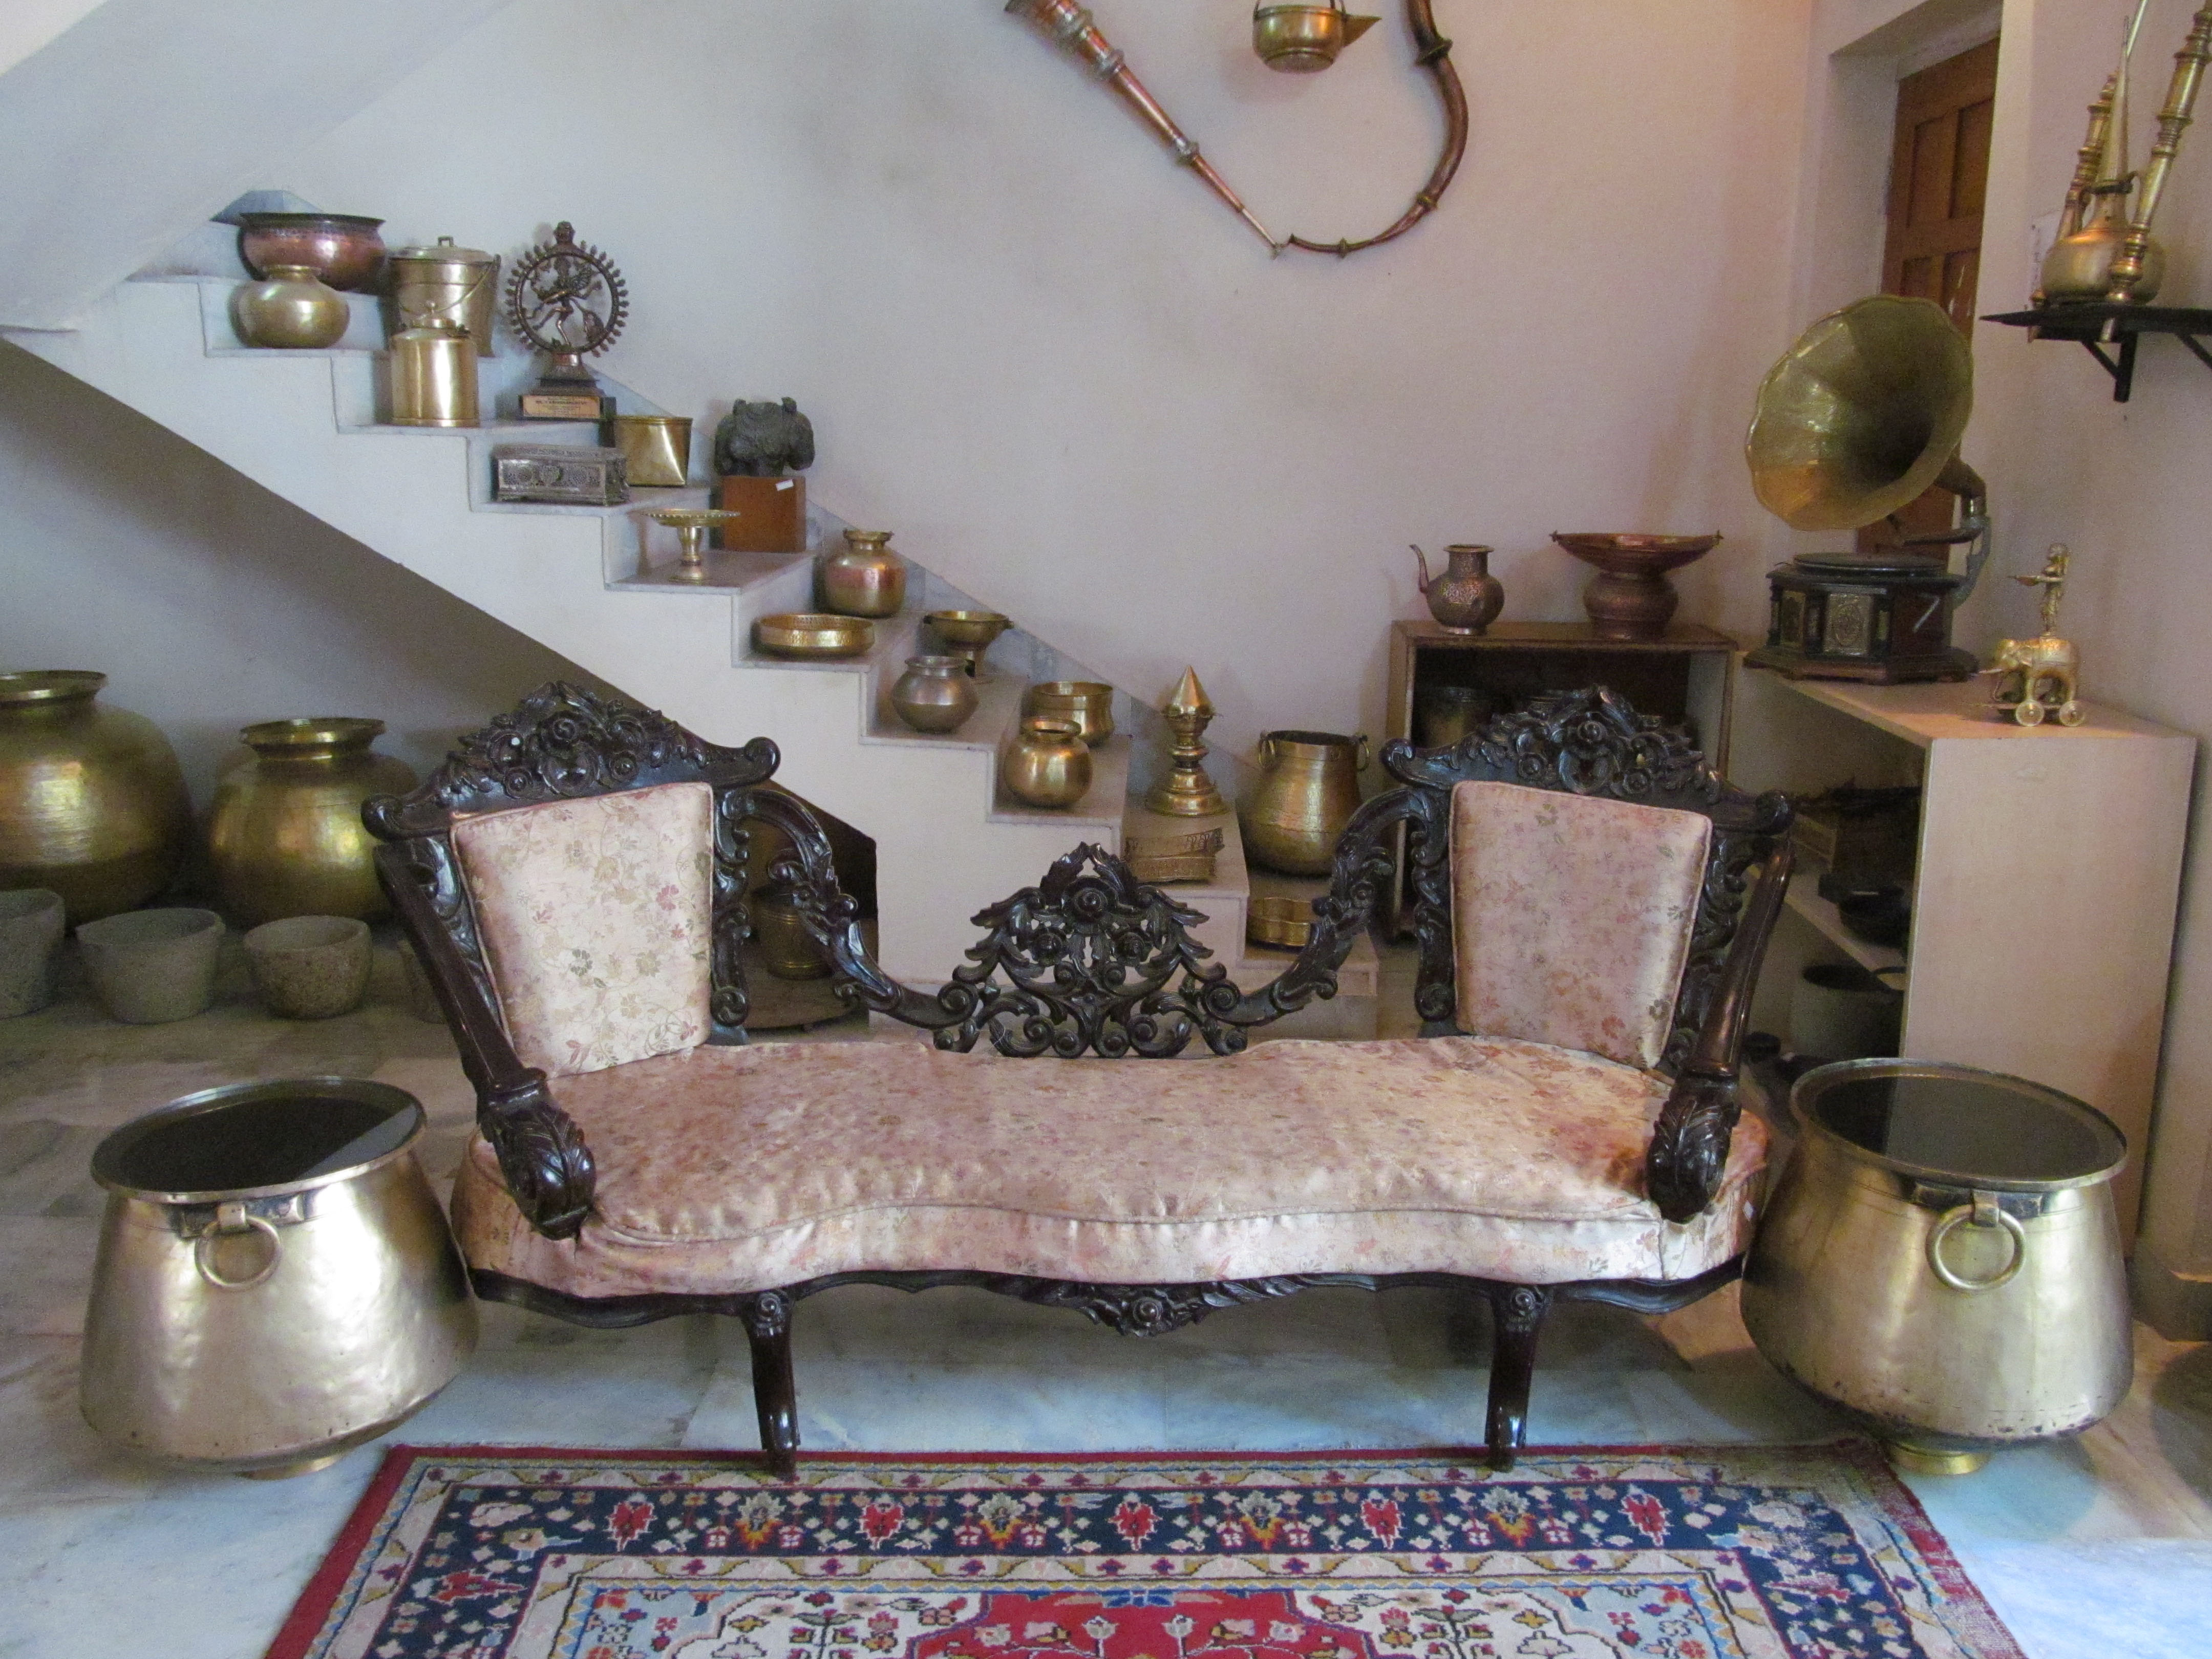 A Reconditioned Antique Portuguese Protocol Sofa Matched With Two Old Br Vessels Repurposed As Peg Tables